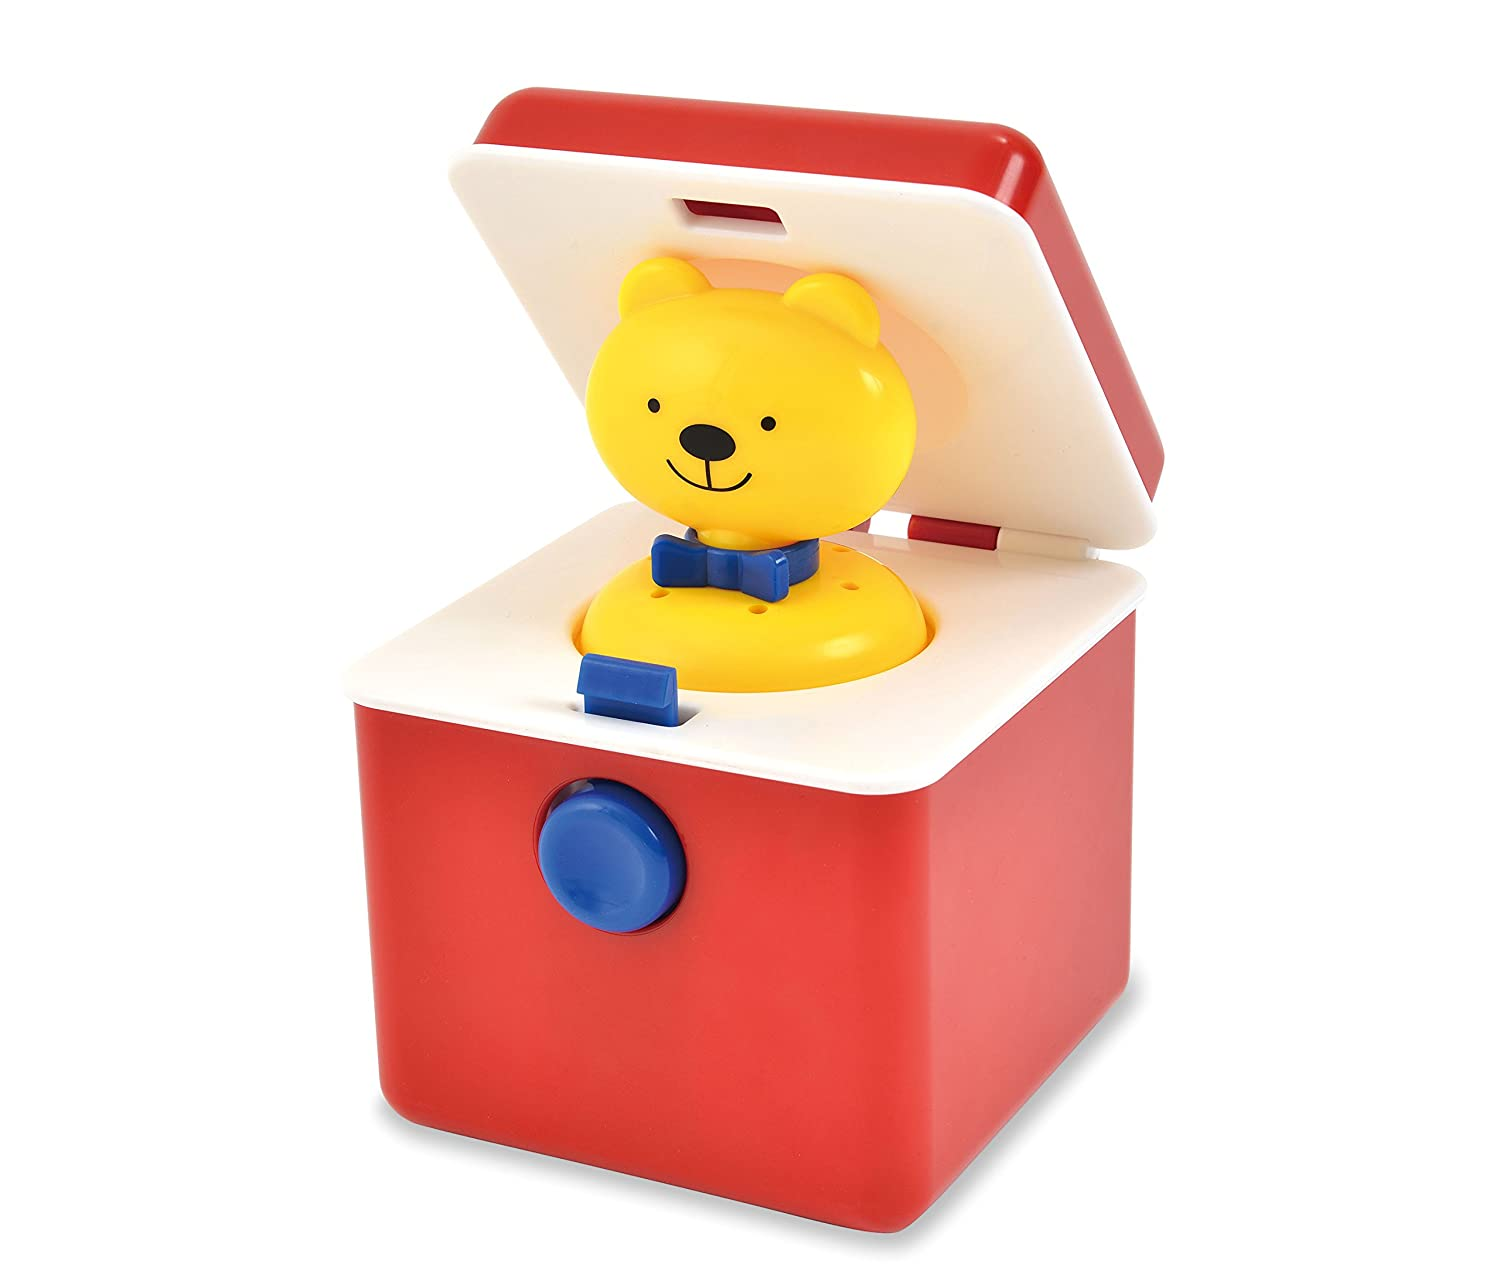 Ambi Toys Ted in a Box Galt Toys 31220